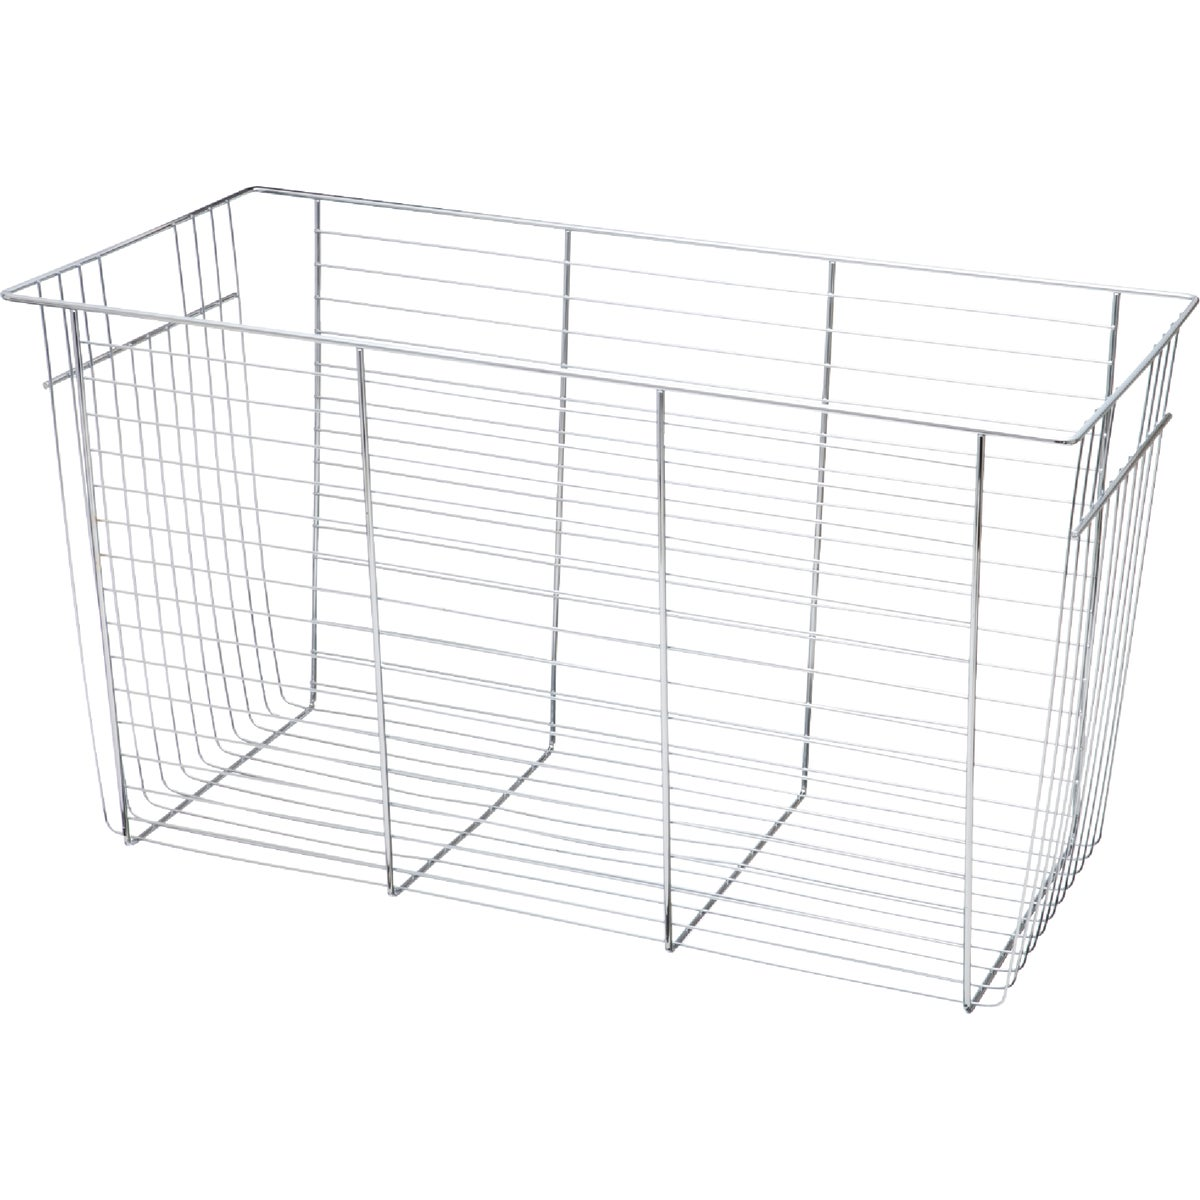 "6"" CHROME BASKET - 7510140634 by Schulte Corp"